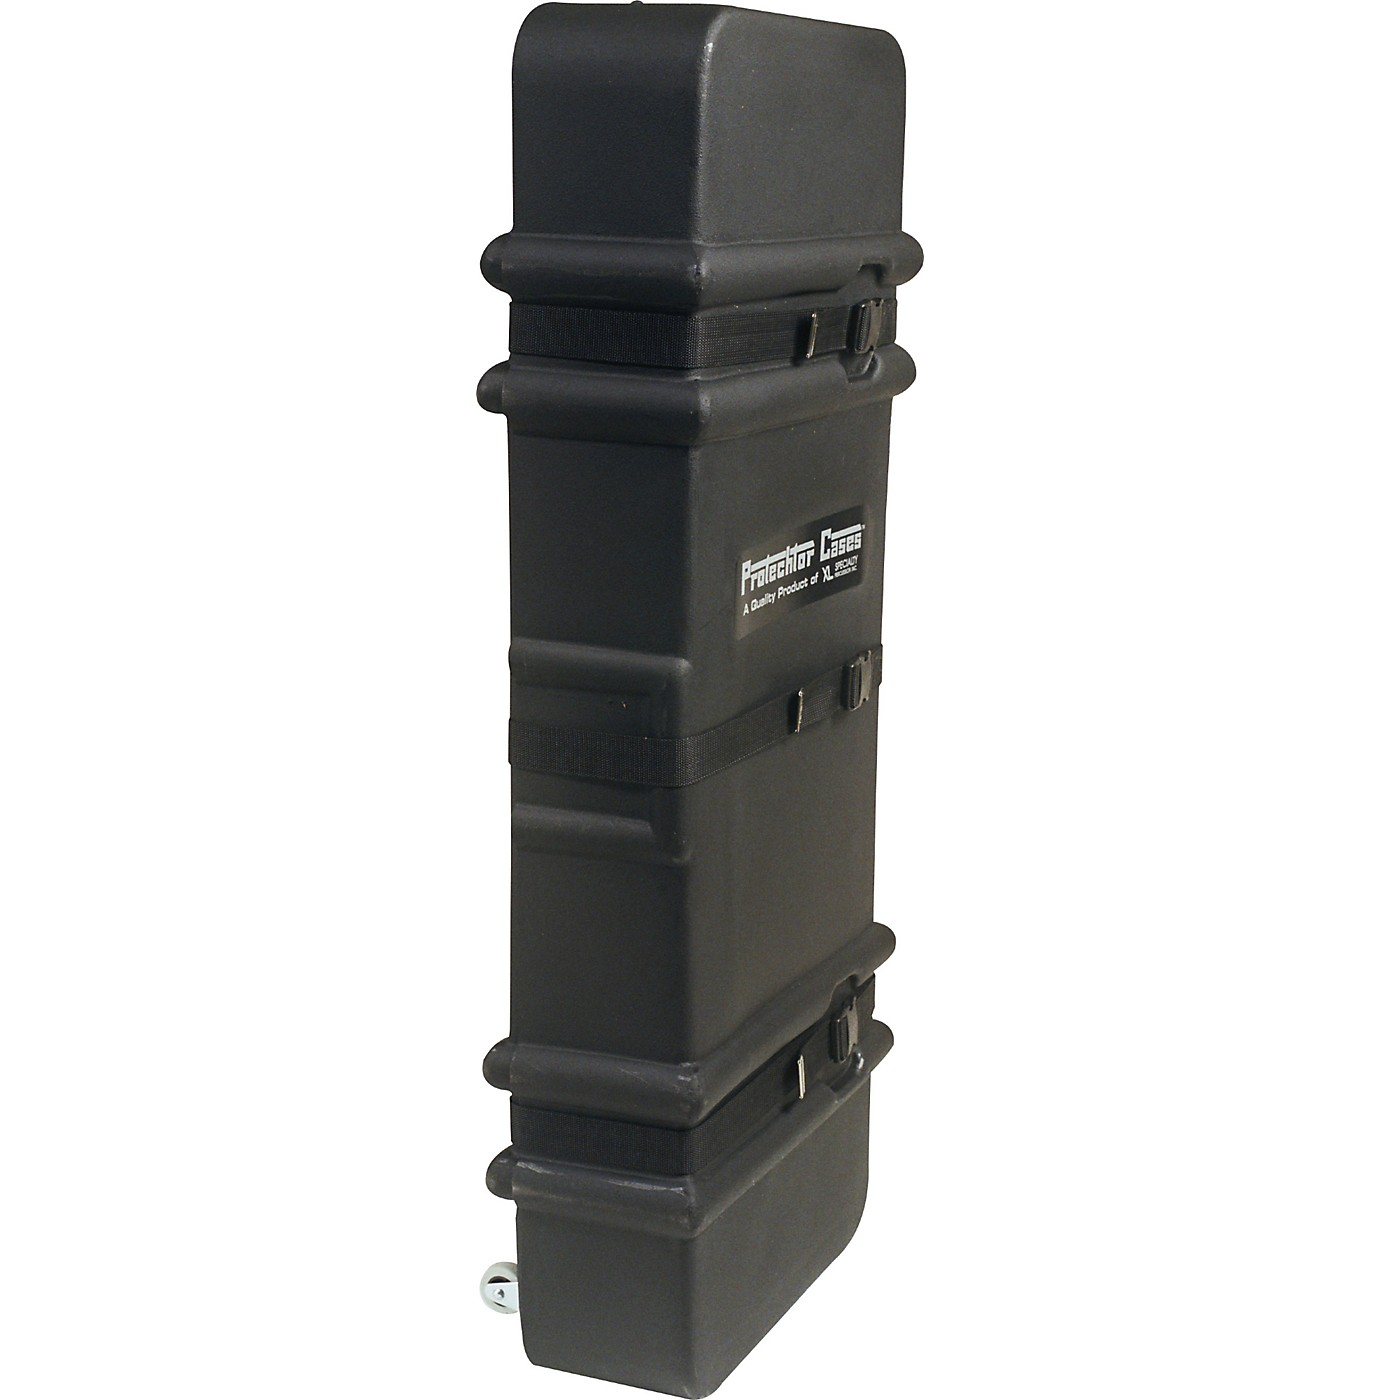 Protechtor Cases Protechtor Classic Accessory Case with Wheels thumbnail